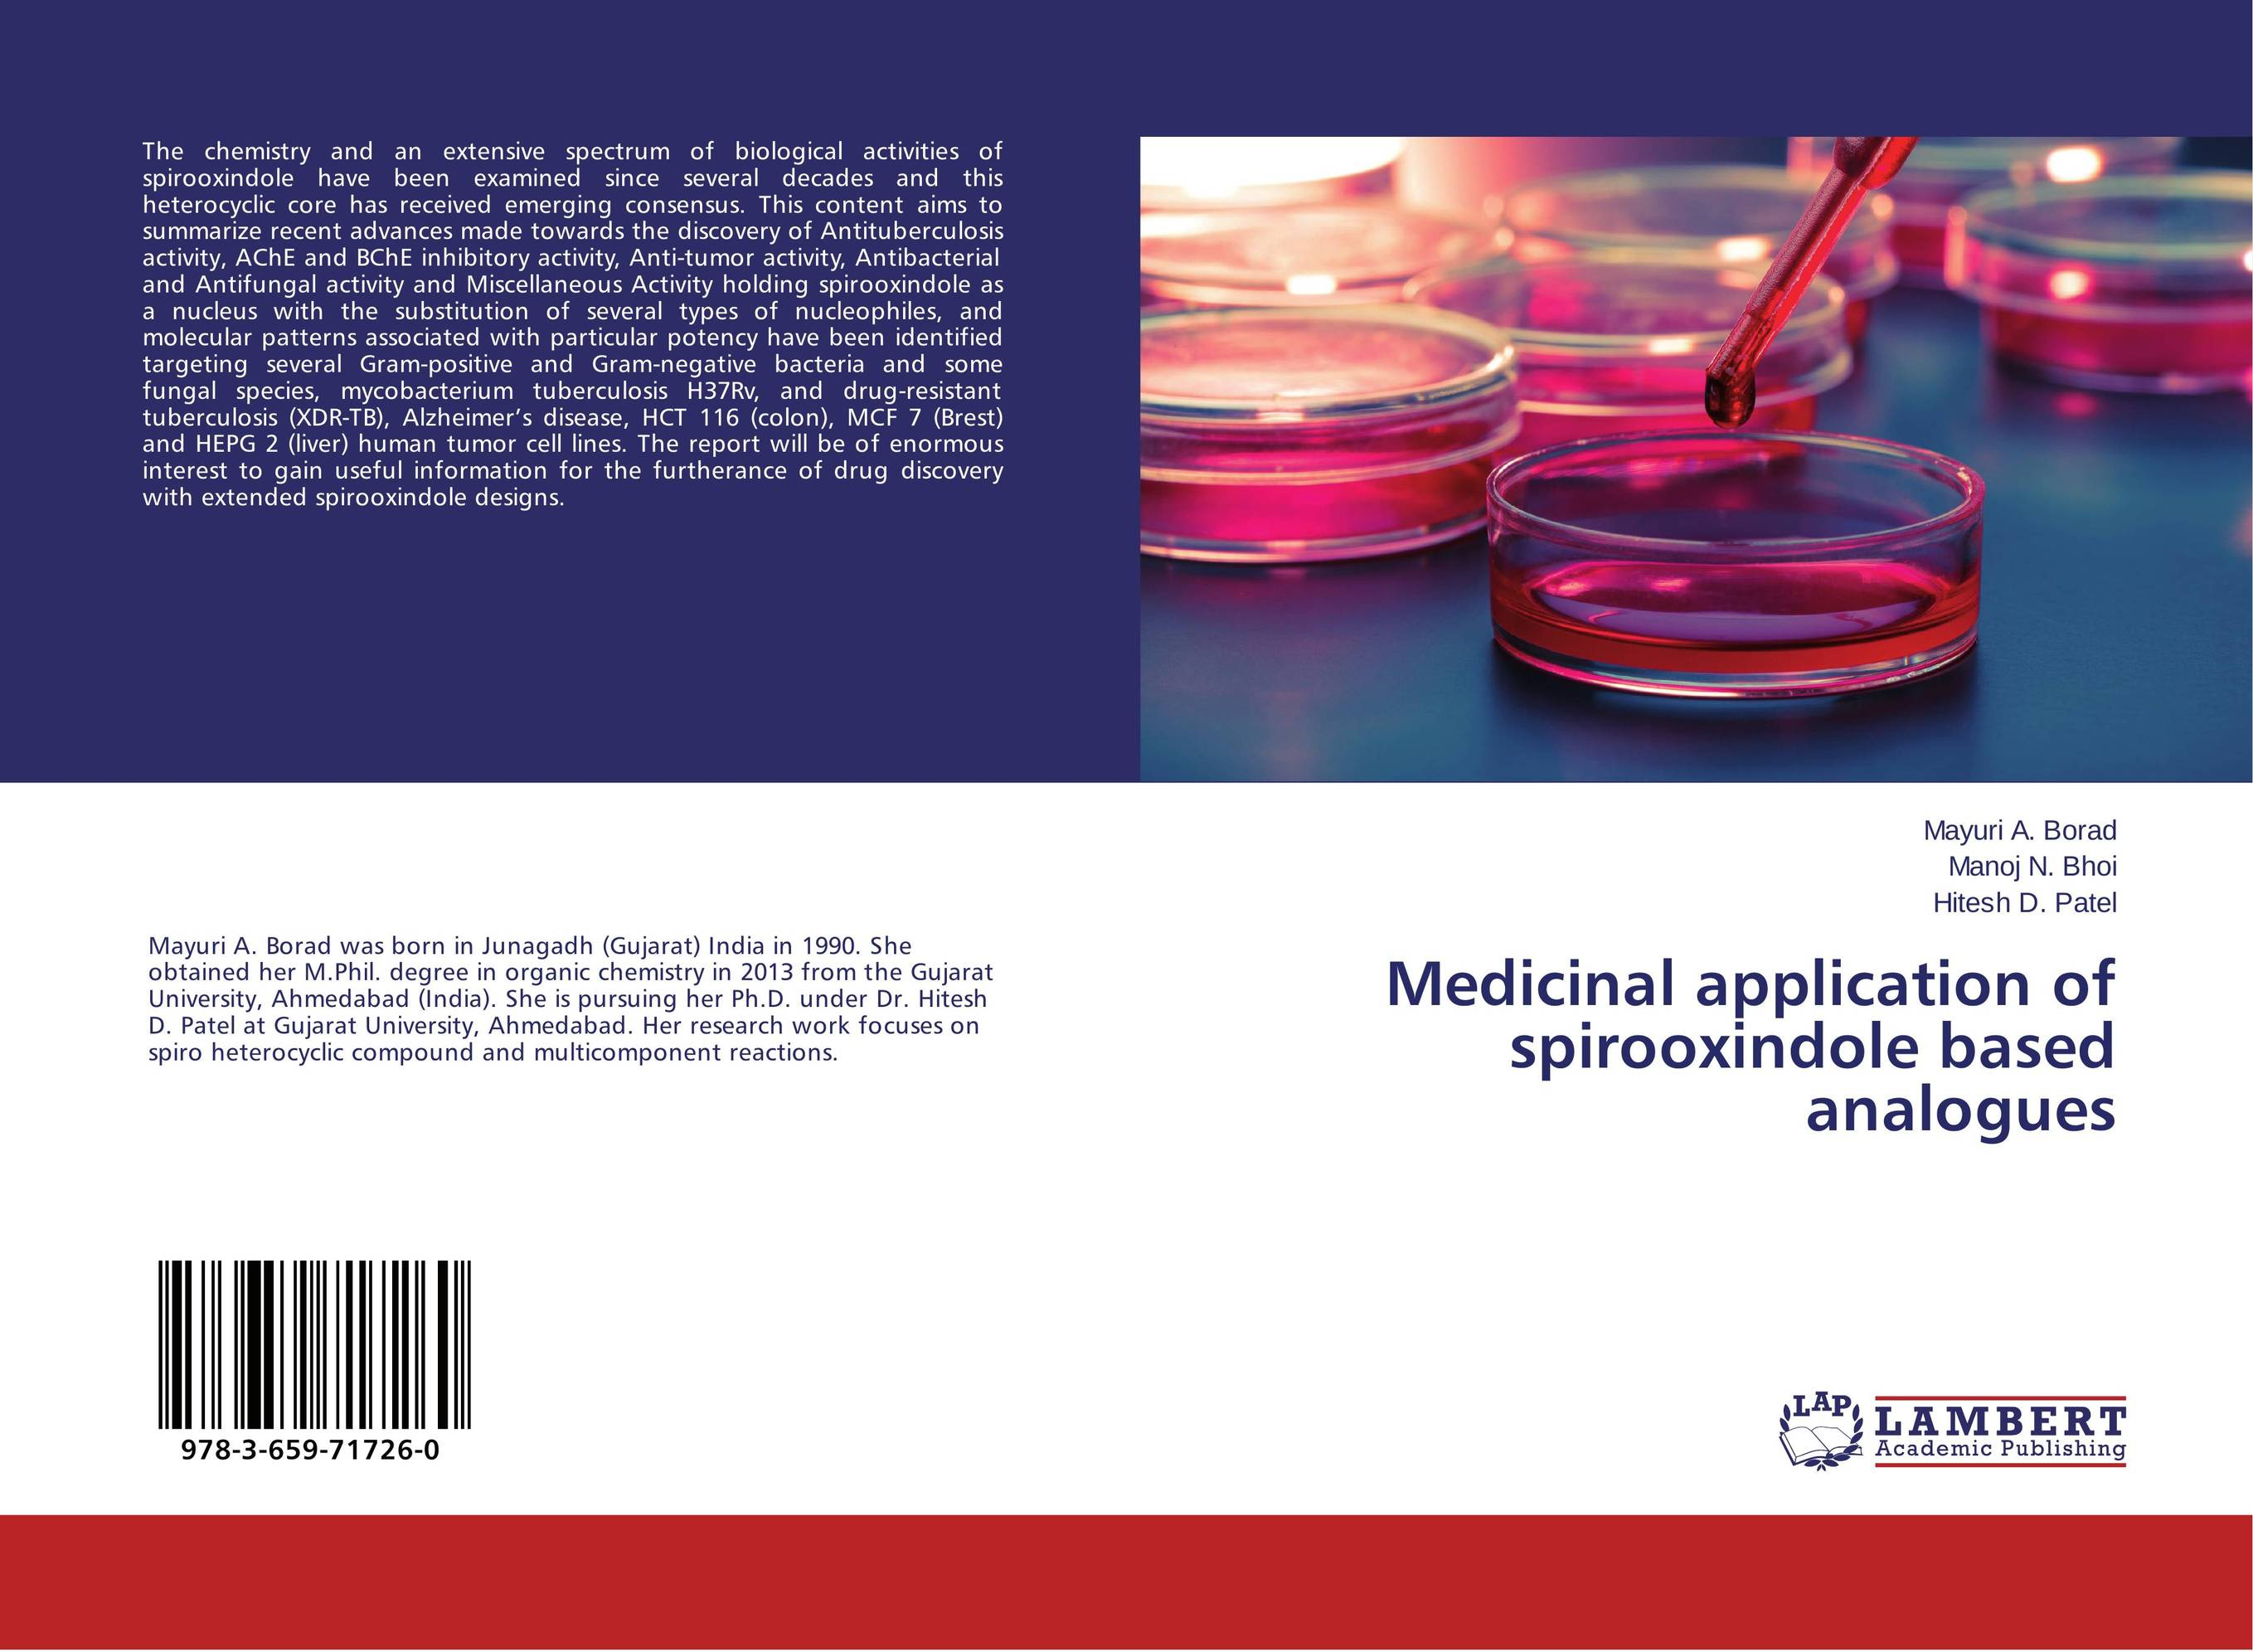 Medicinal application of spirooxindole based analogues drug discovery and design